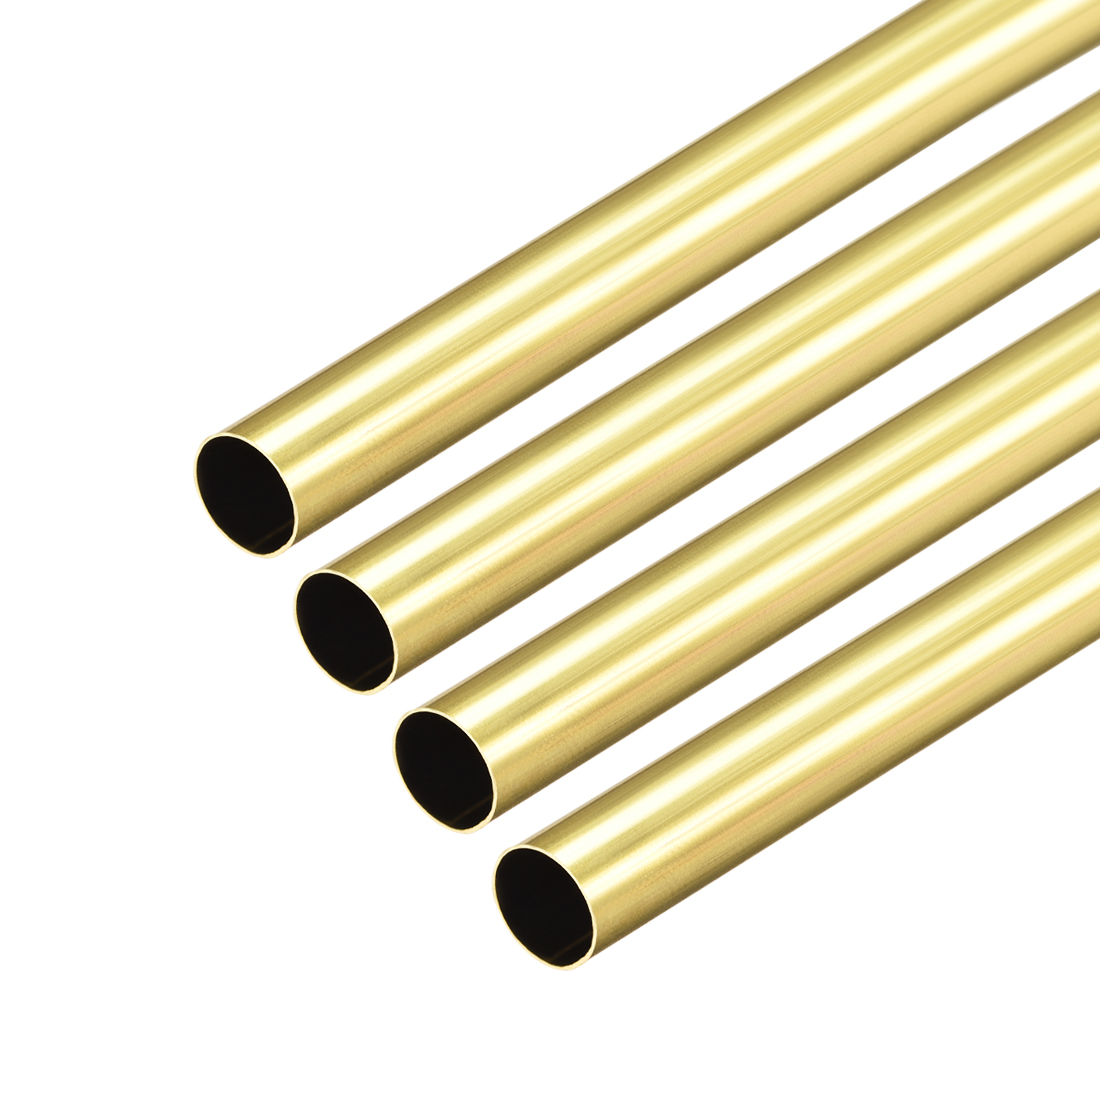 Uxcell Brass Round Tube 300mm Length 7mm OD 0.2mm Wall Thickness Seamless Straight Pipe Tubing 4 Pcs